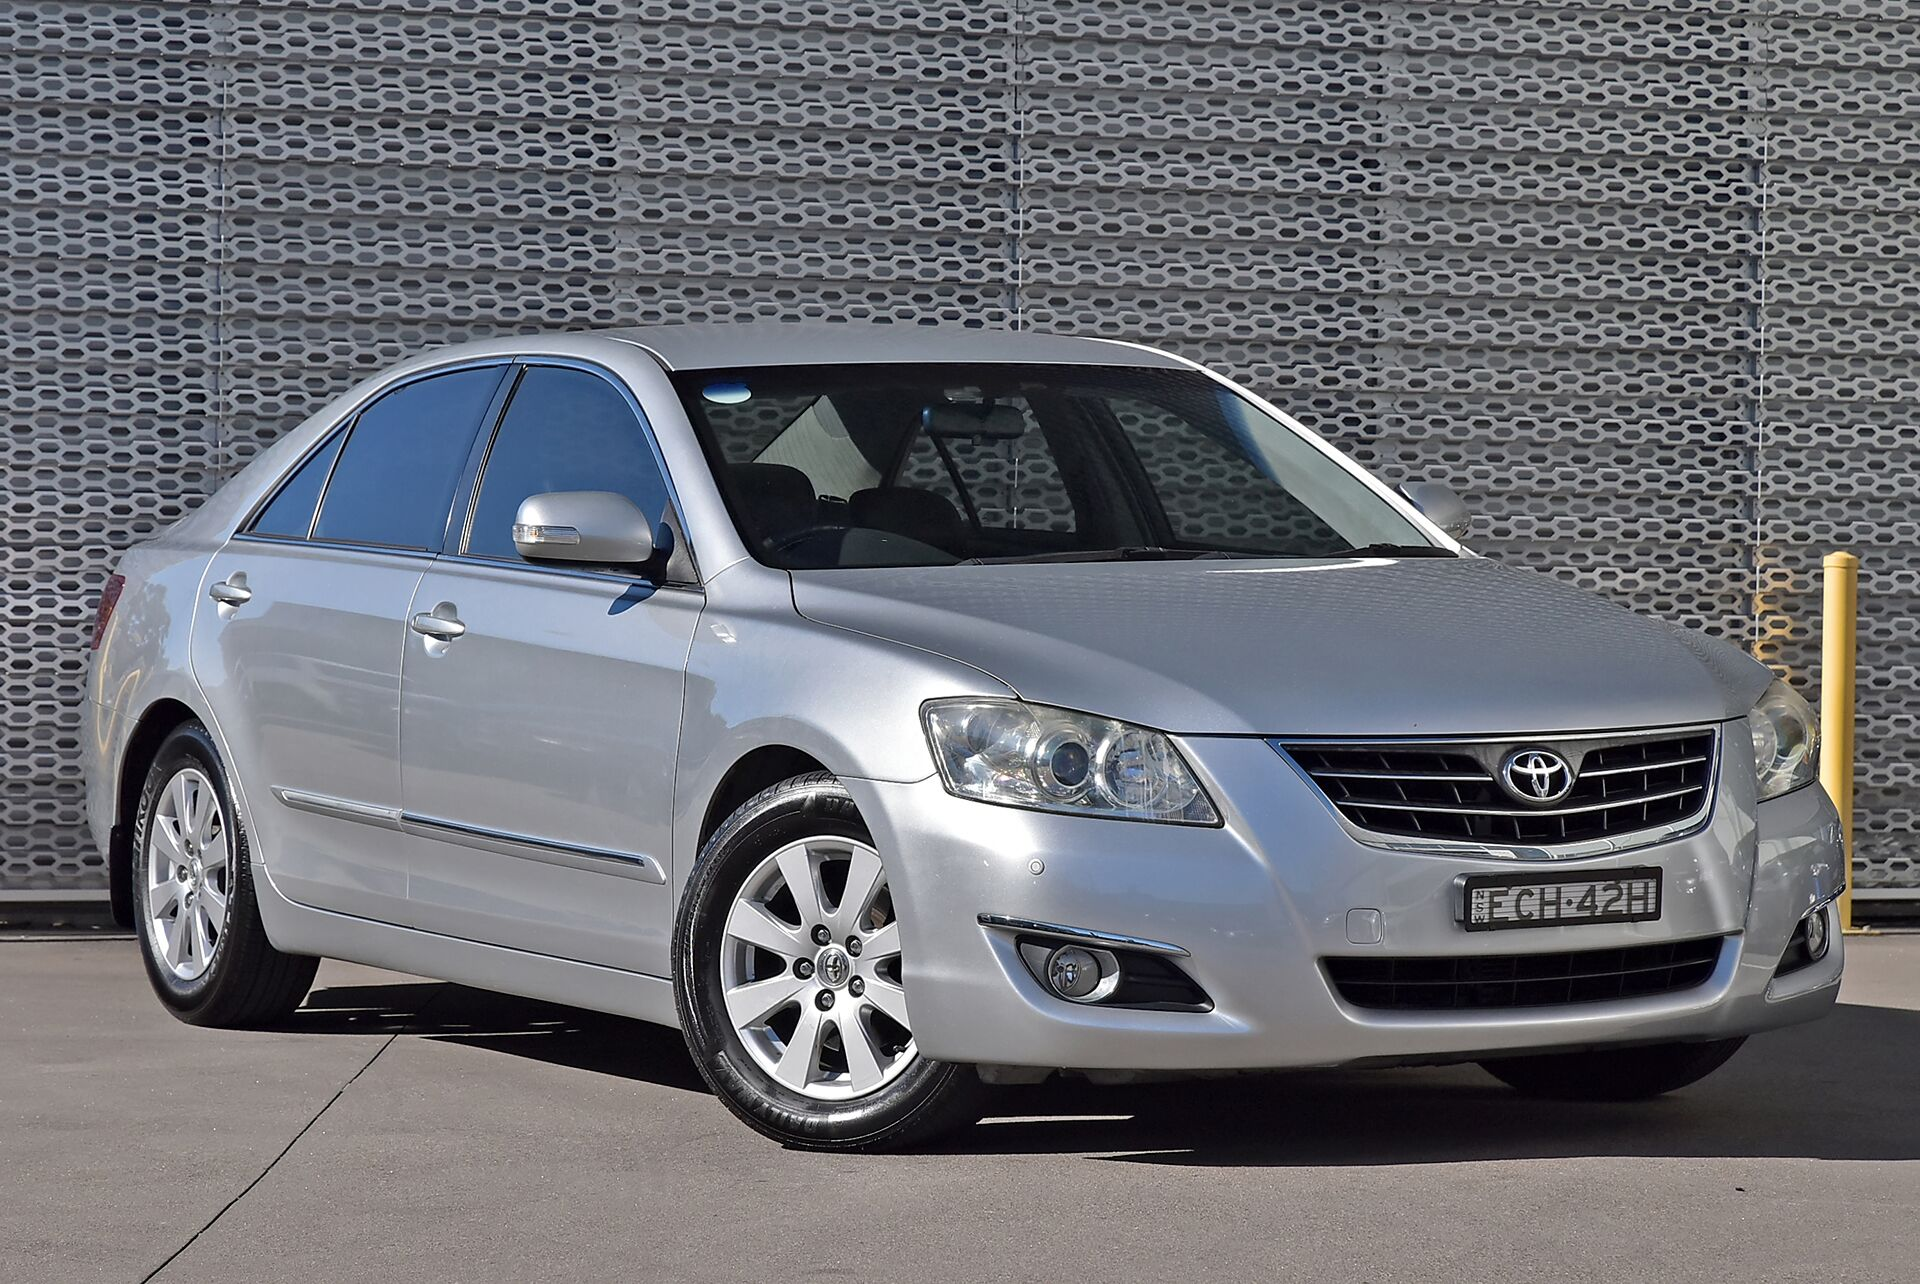 Picture of Jaime's 2008 Toyota Aurion